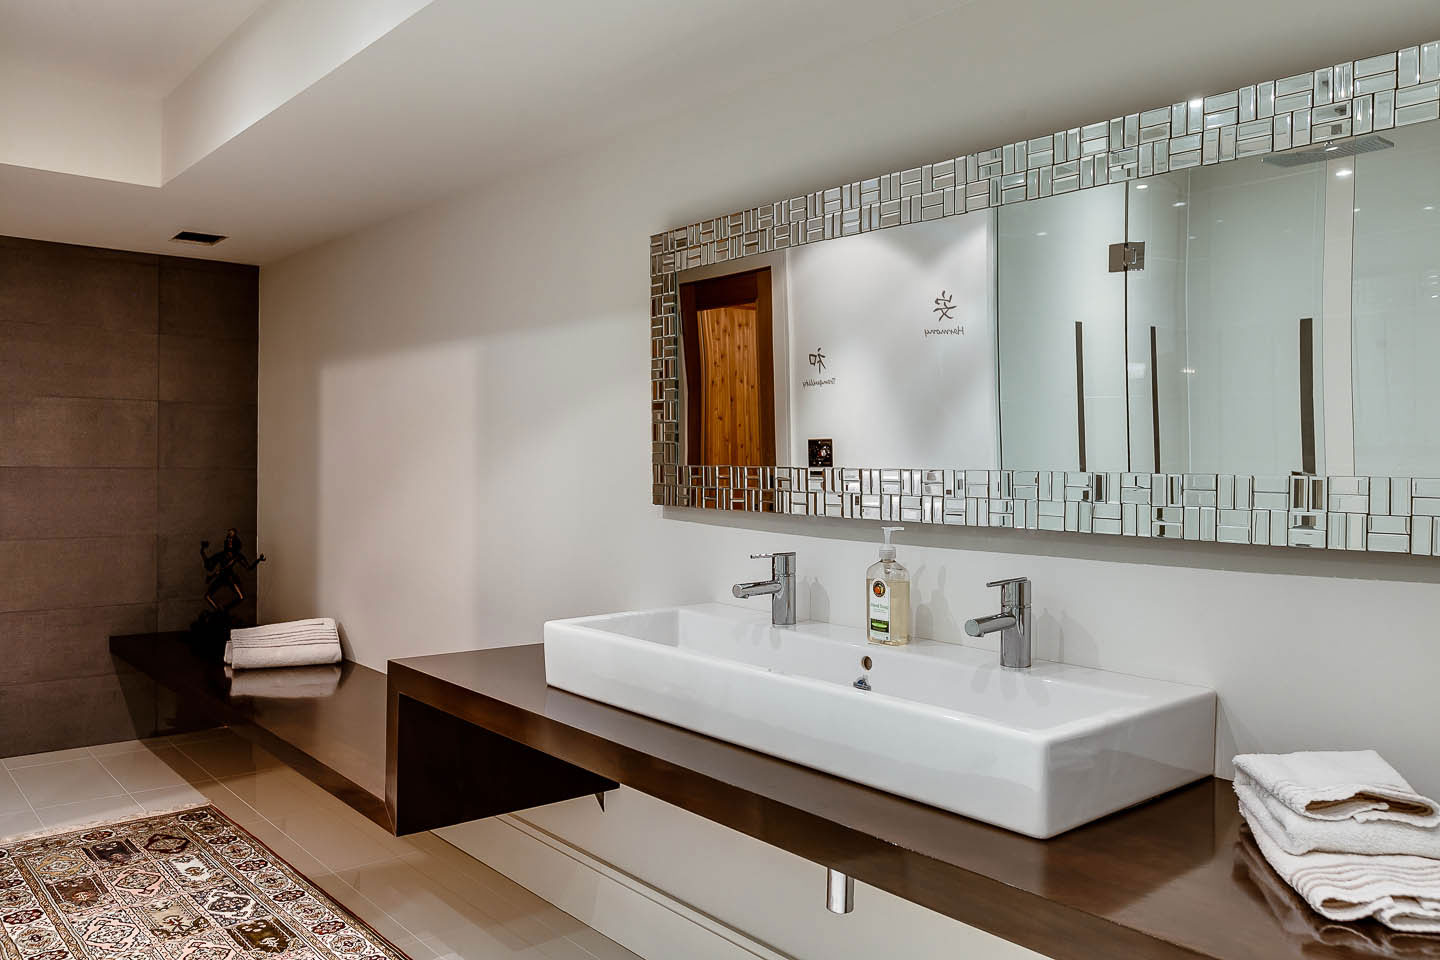 Double Sinks, Bathroom, Mirror, Contemporary House in Toronto, Canada